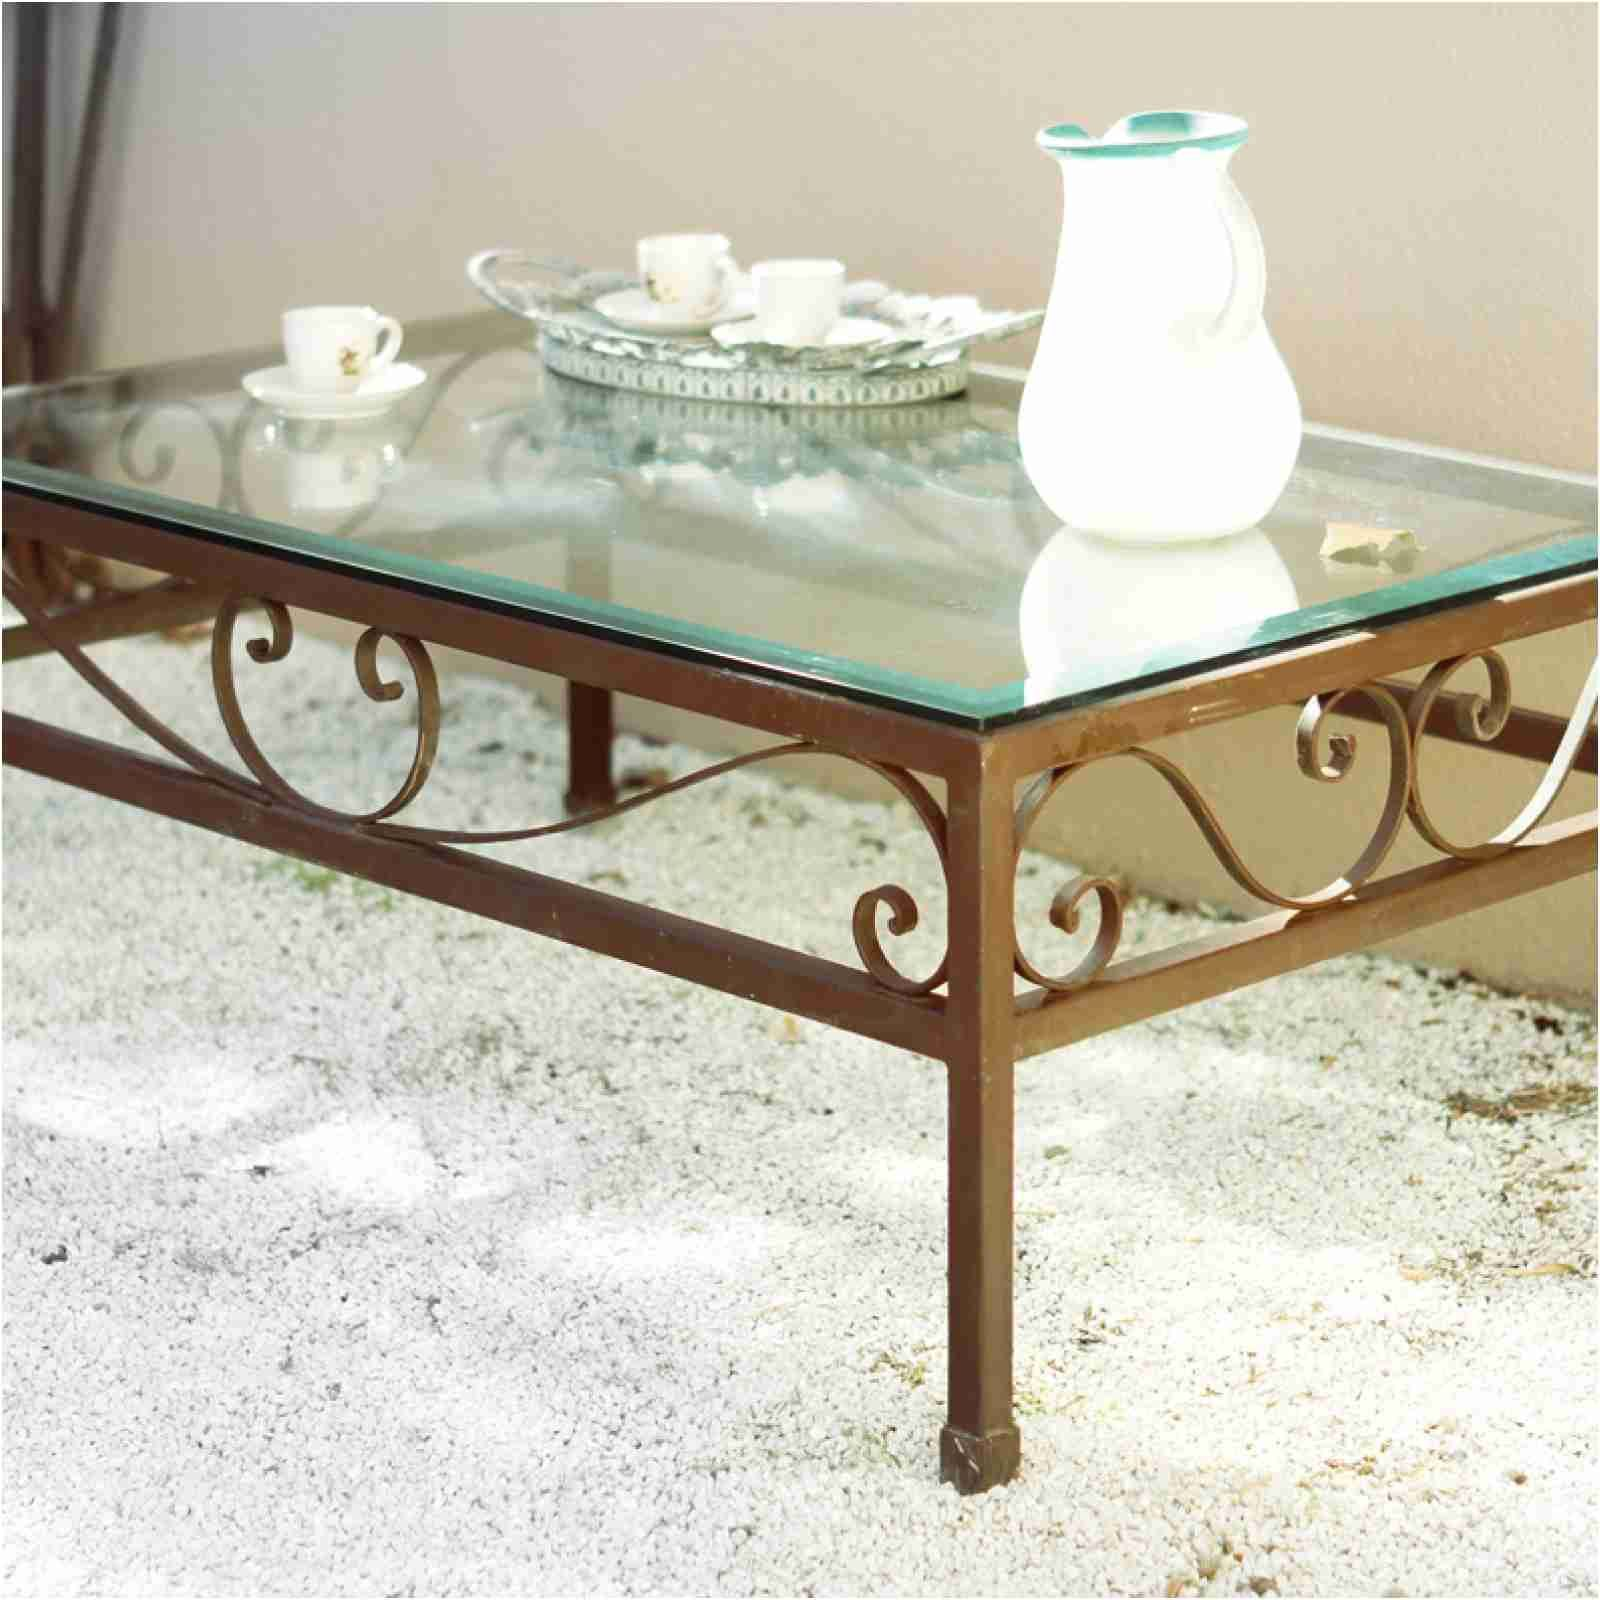 Table Basse Bois Et Fer Forge Elegant Table Basse Bois Verre Fer Forge Ezooq Table Design Coffee Table Table